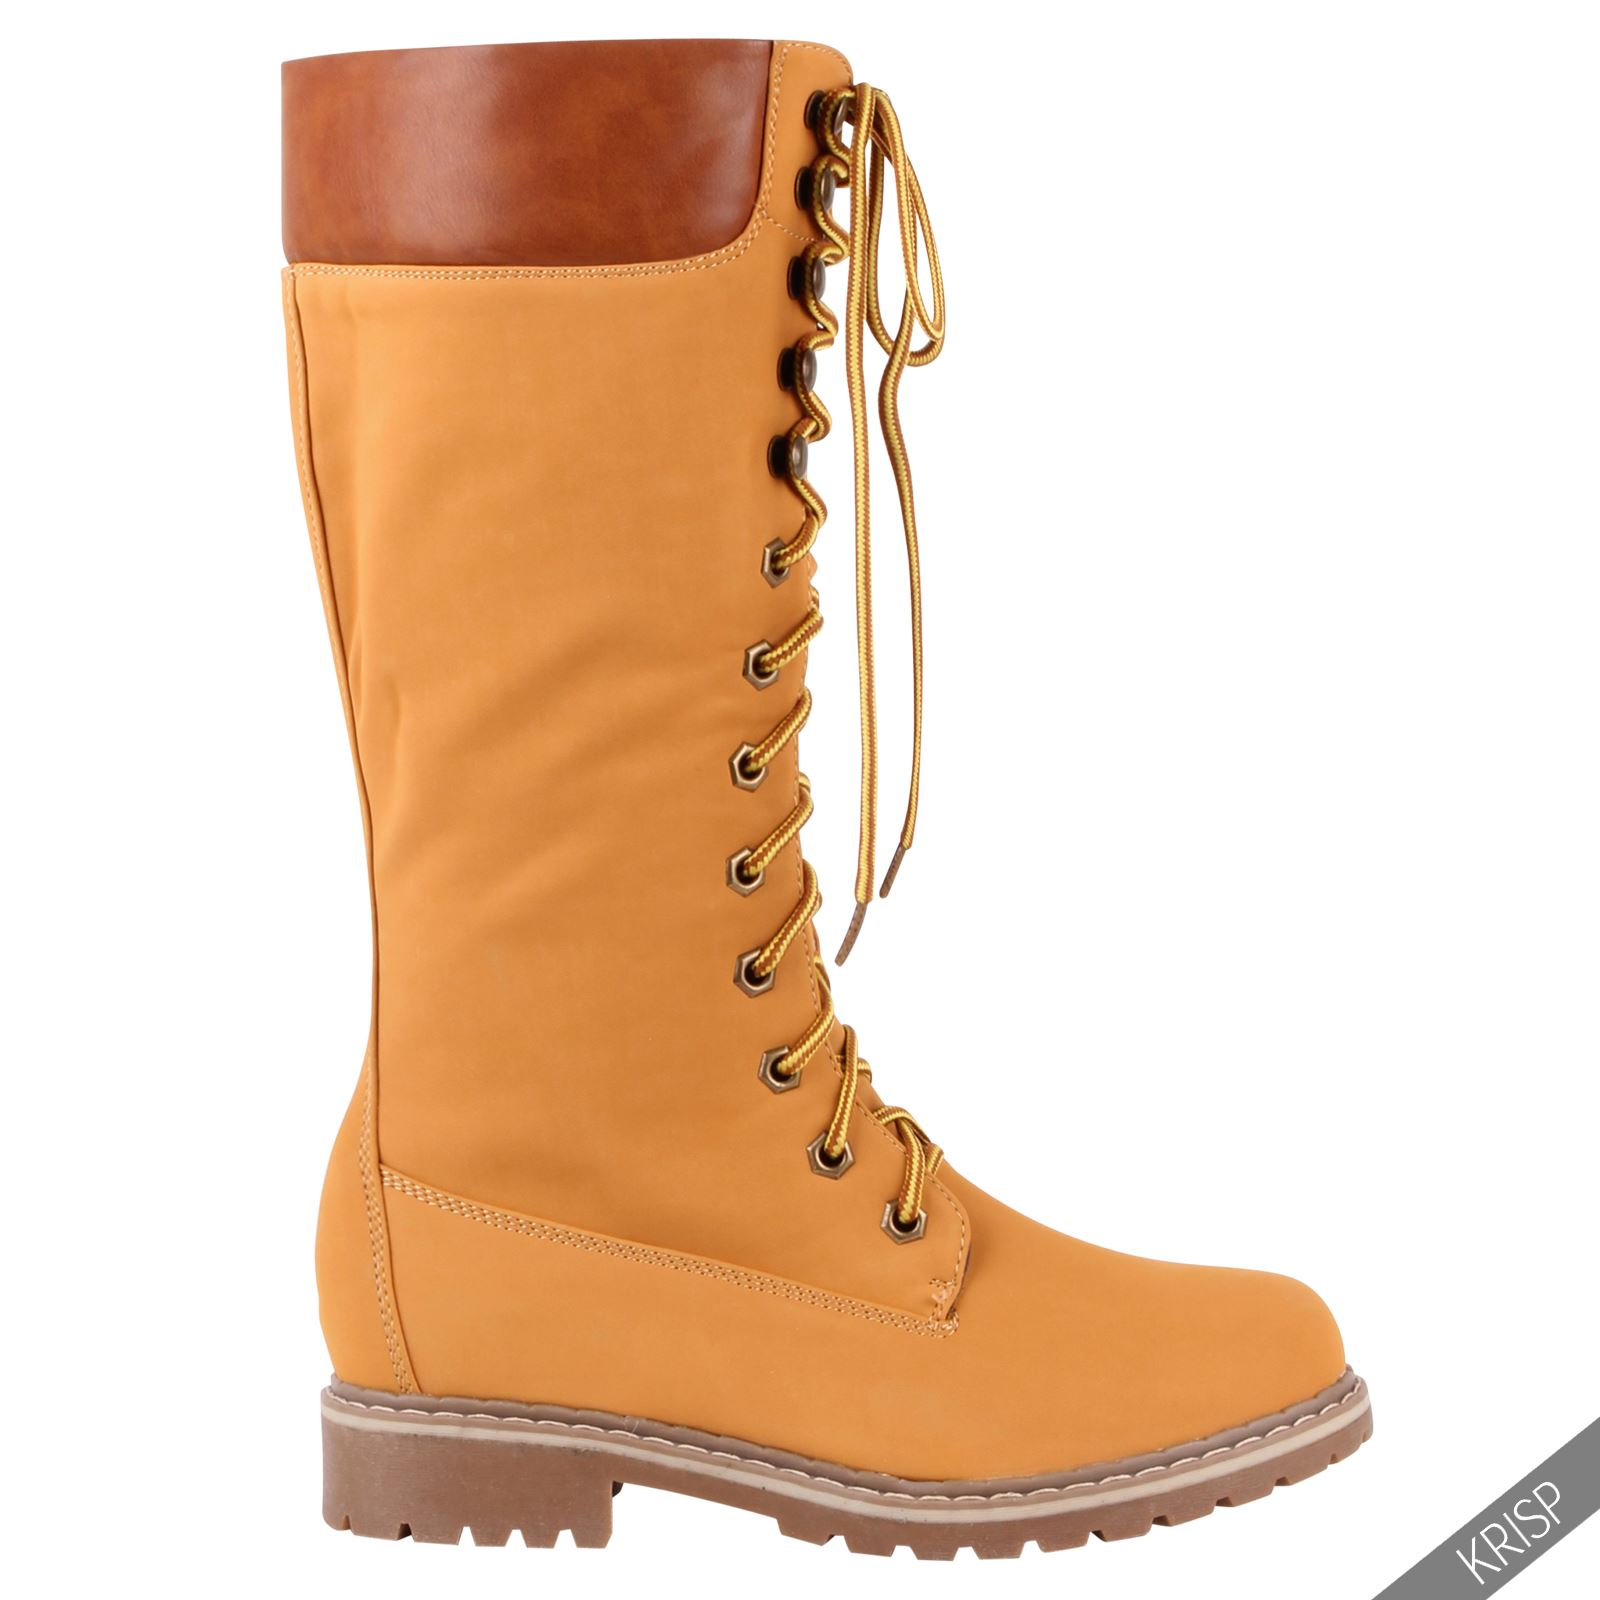 27 wonderful womens worker style boots for Combat portent 30 22